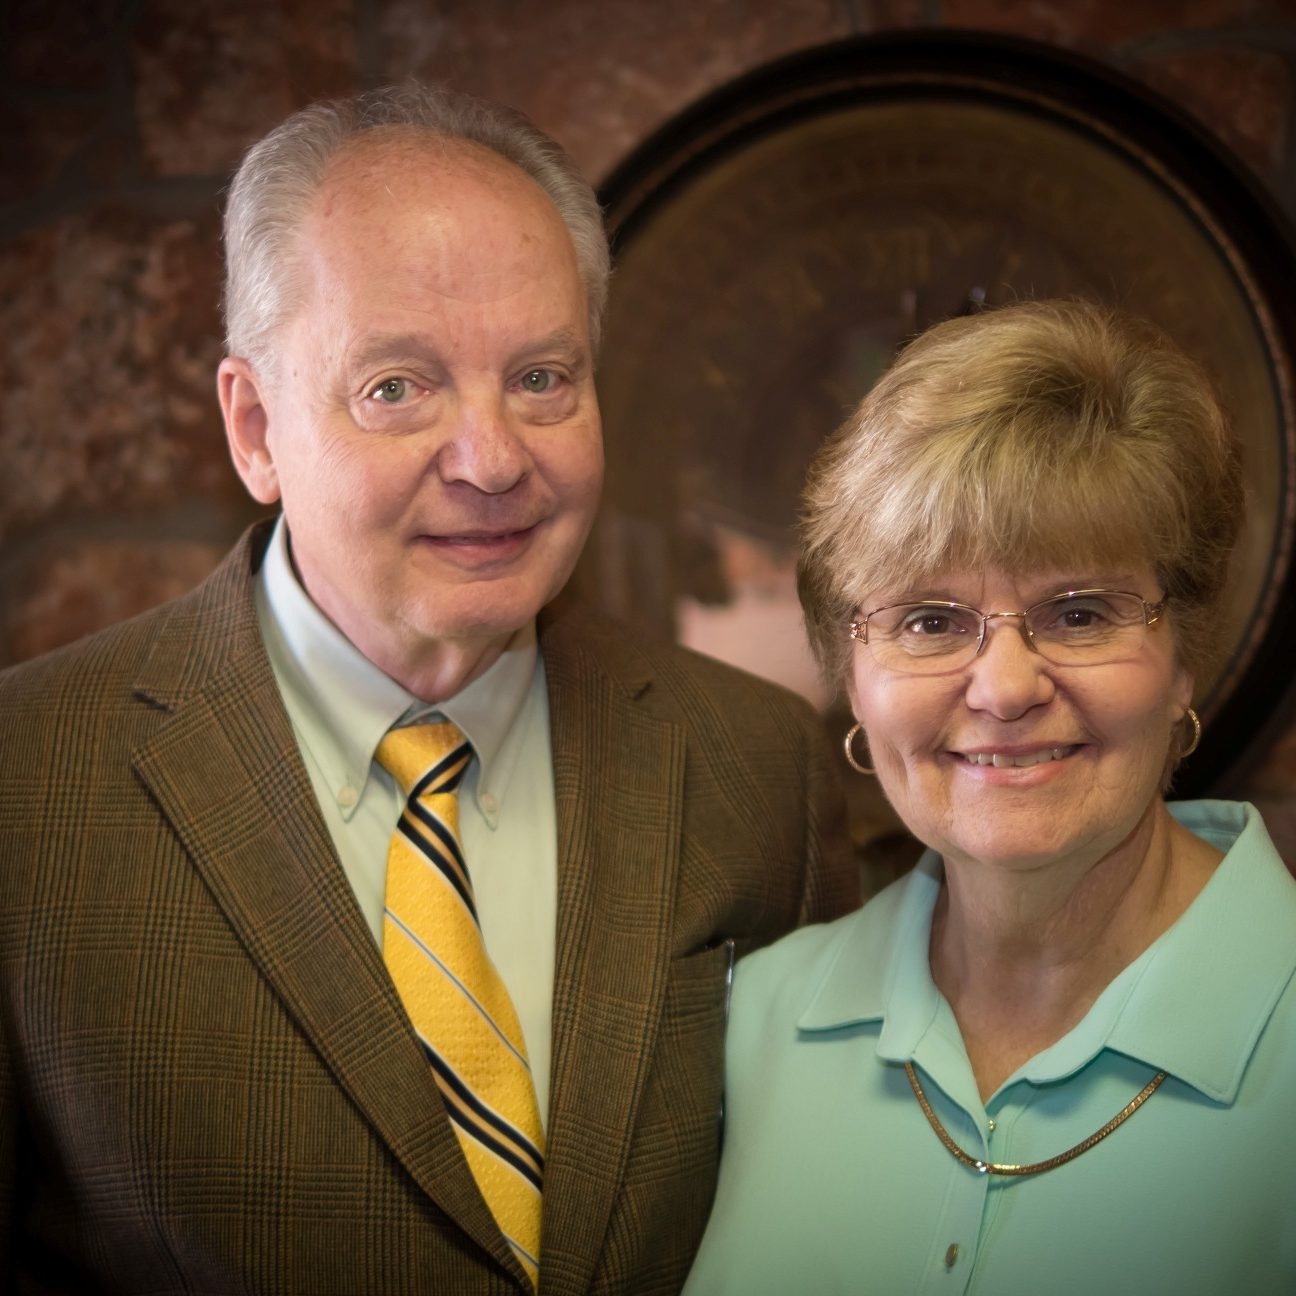 Pastor David and Joanne Vahle sm